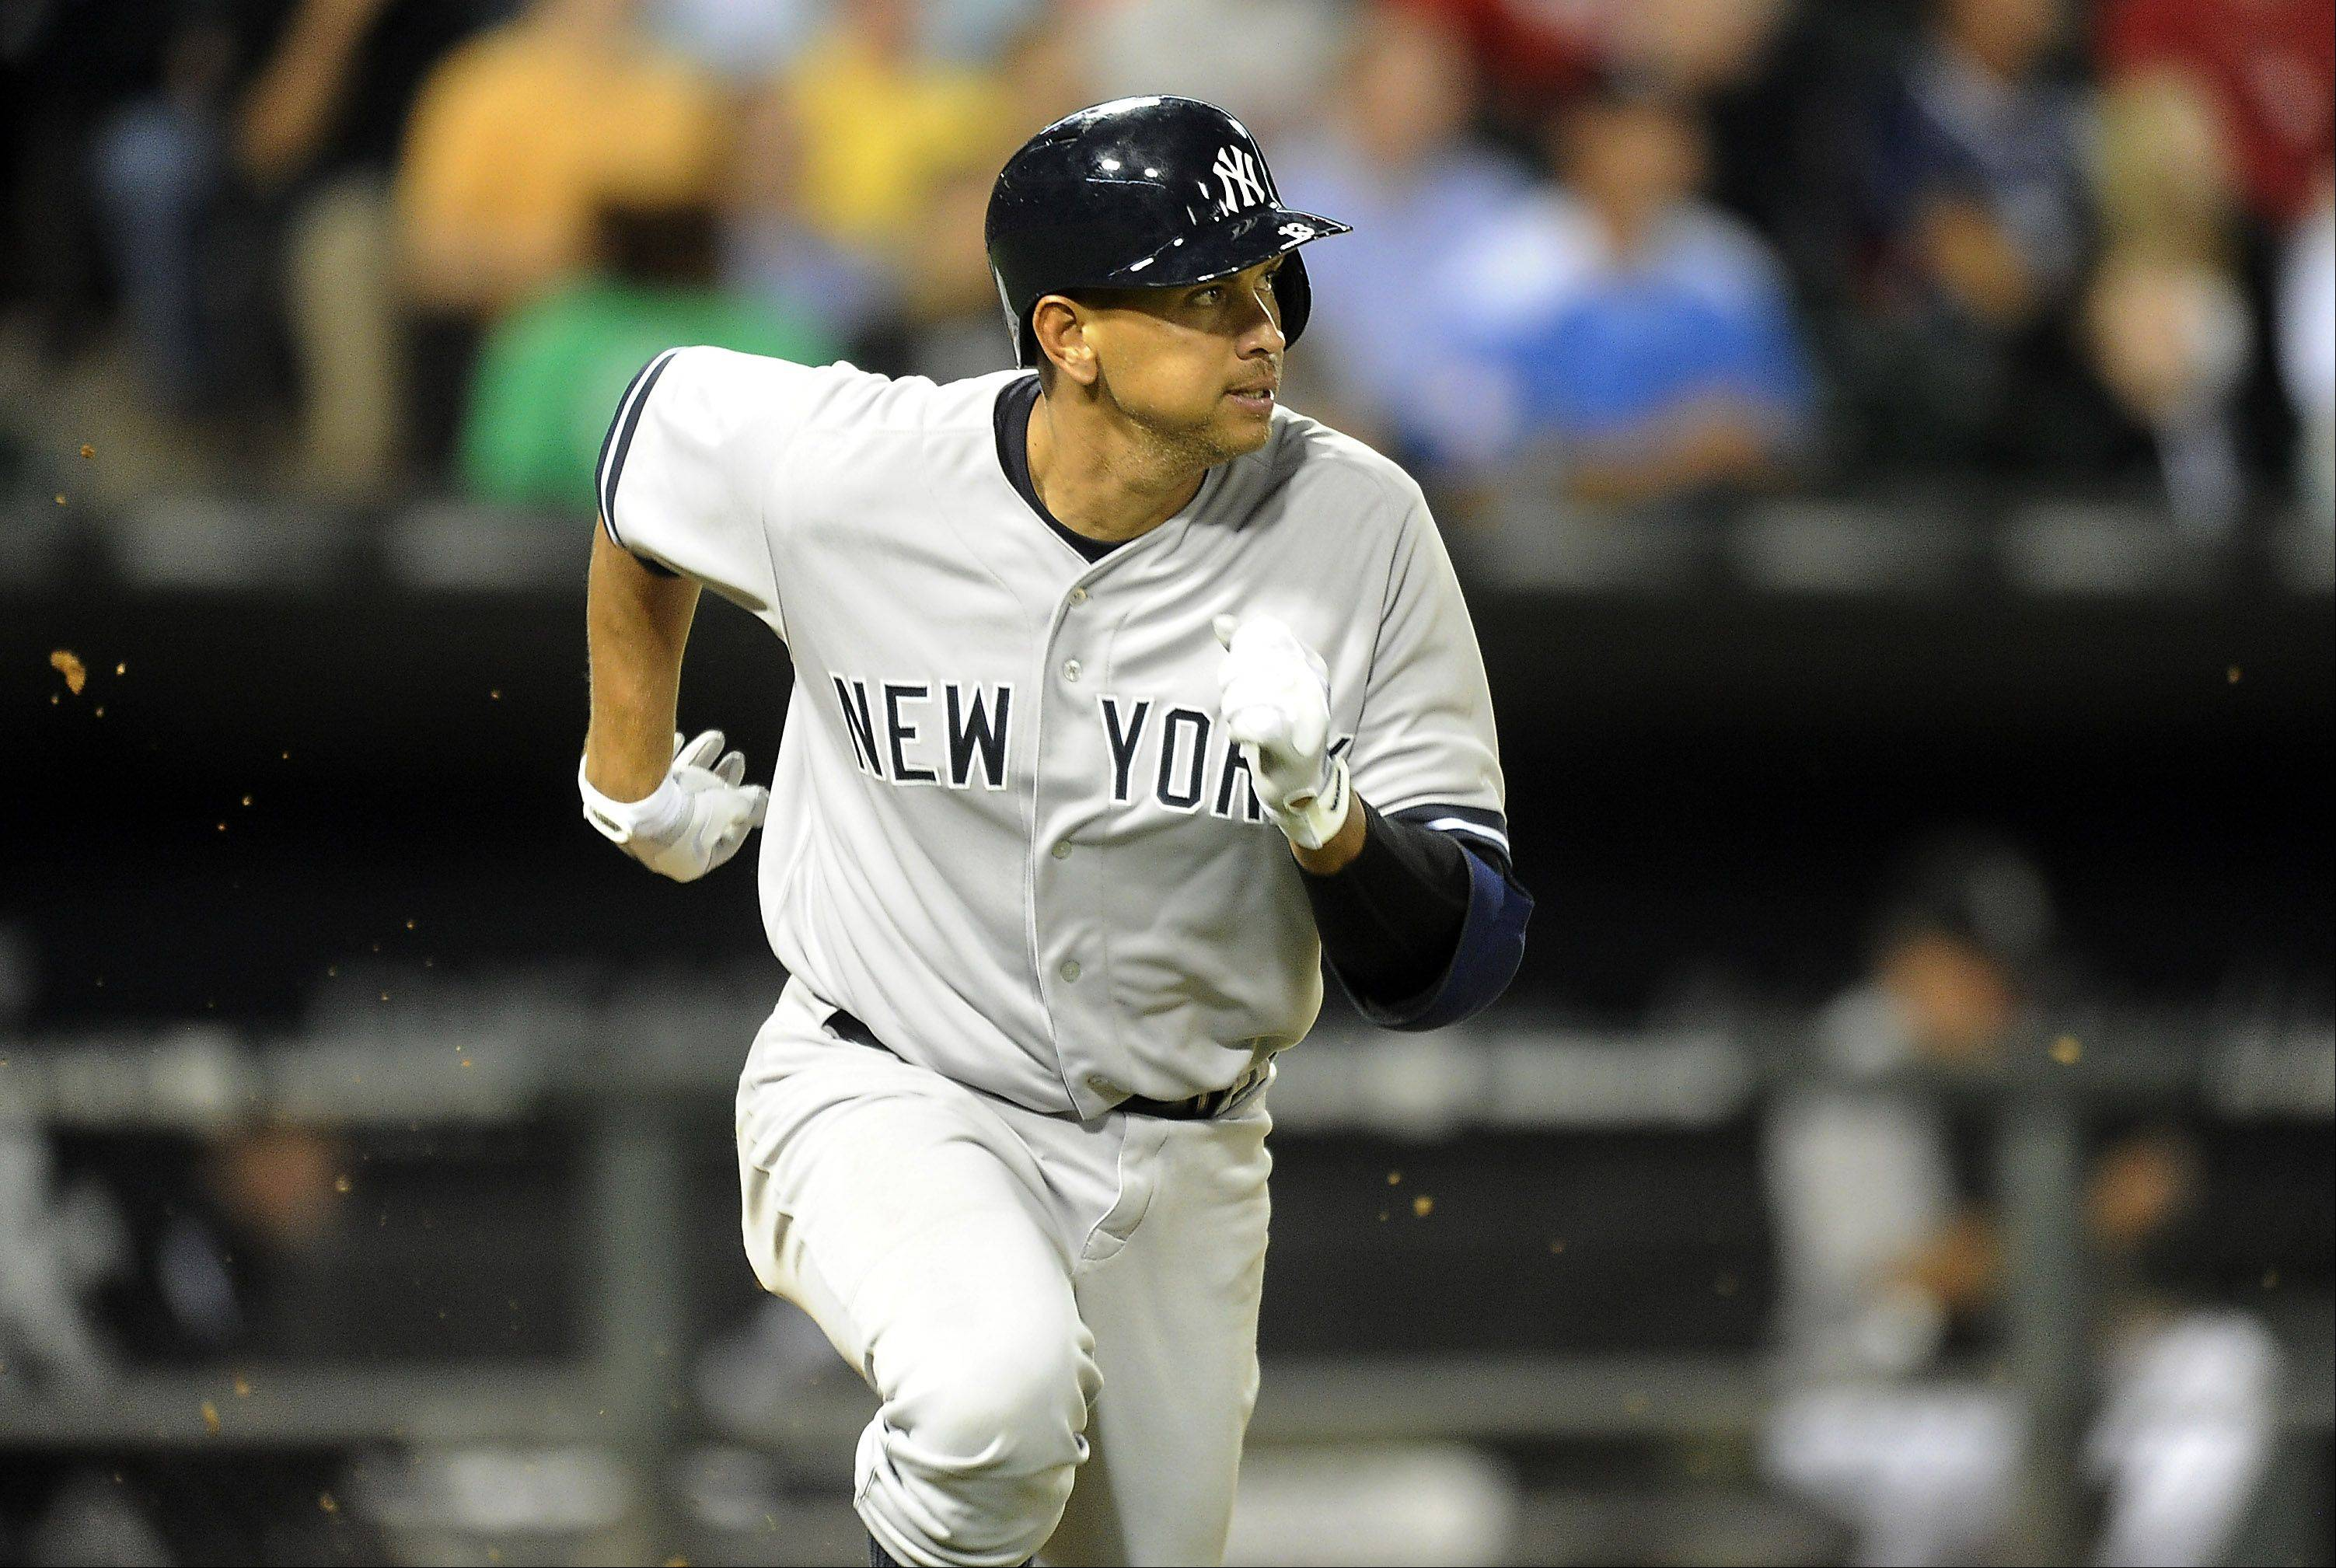 New York Yankees Alex Rodriguez eyes his fly ball hit to center field as he runs to first base which was caught in the fourth inning at Cellular Field in Chicago on Monday.